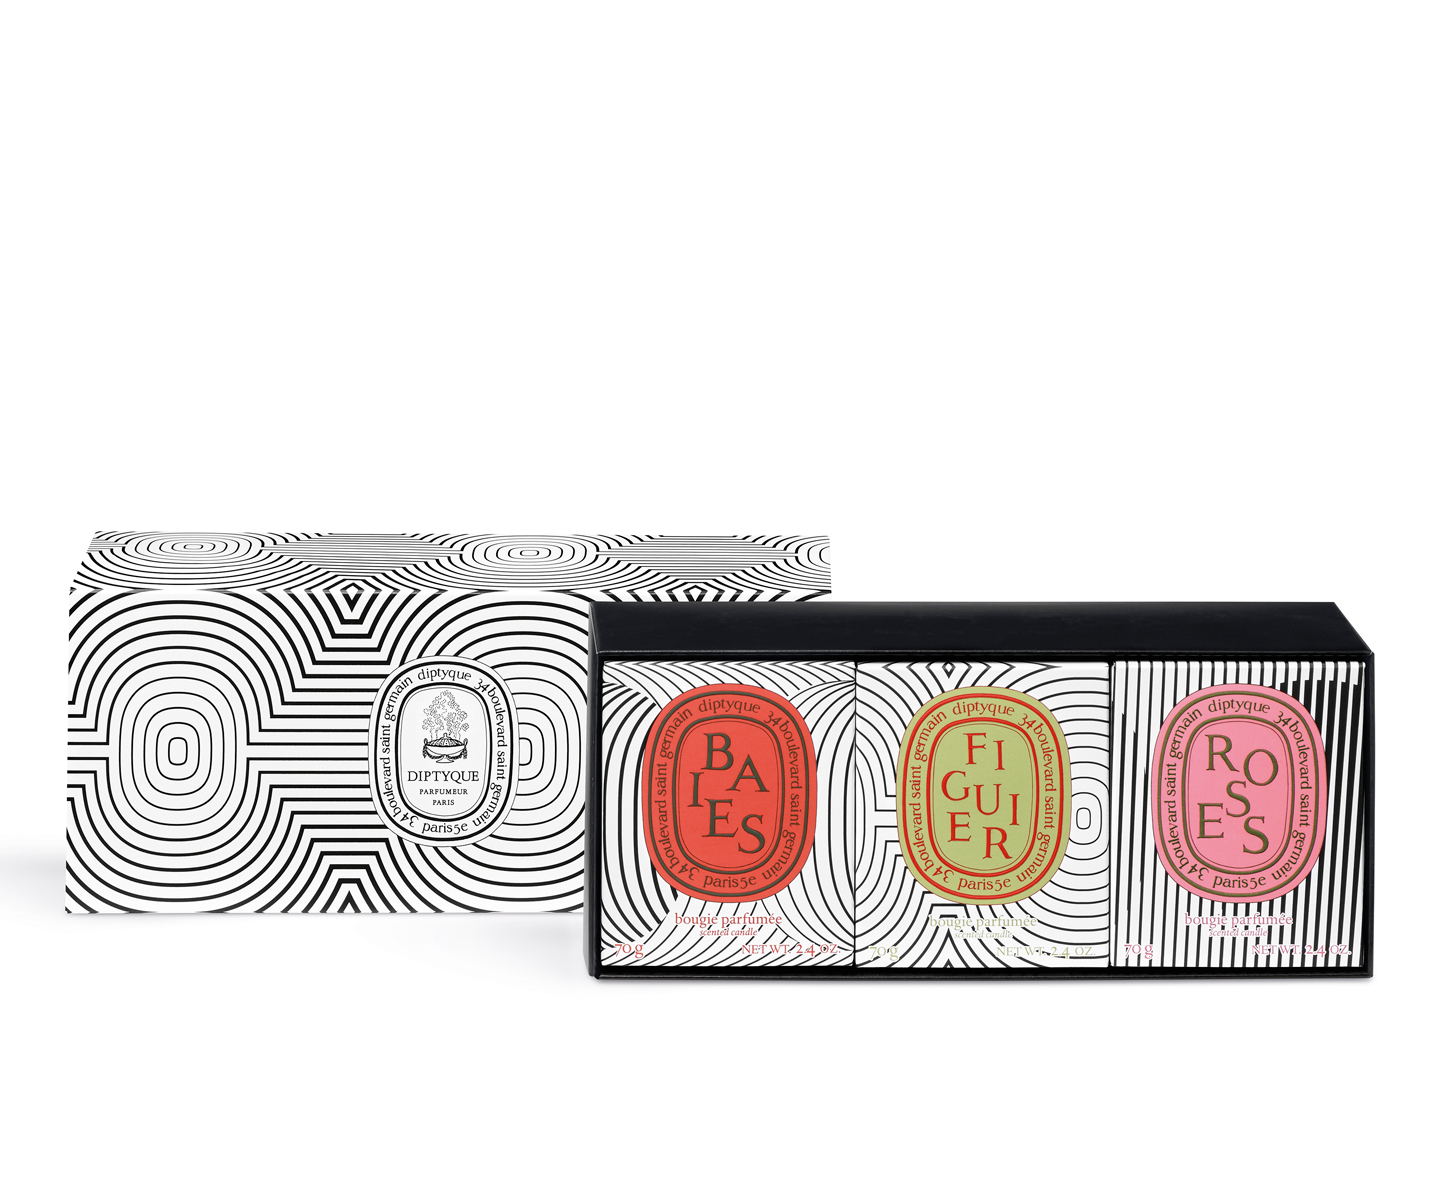 Limited edition gift set of small candles   Candle sets   Diptyque Paris